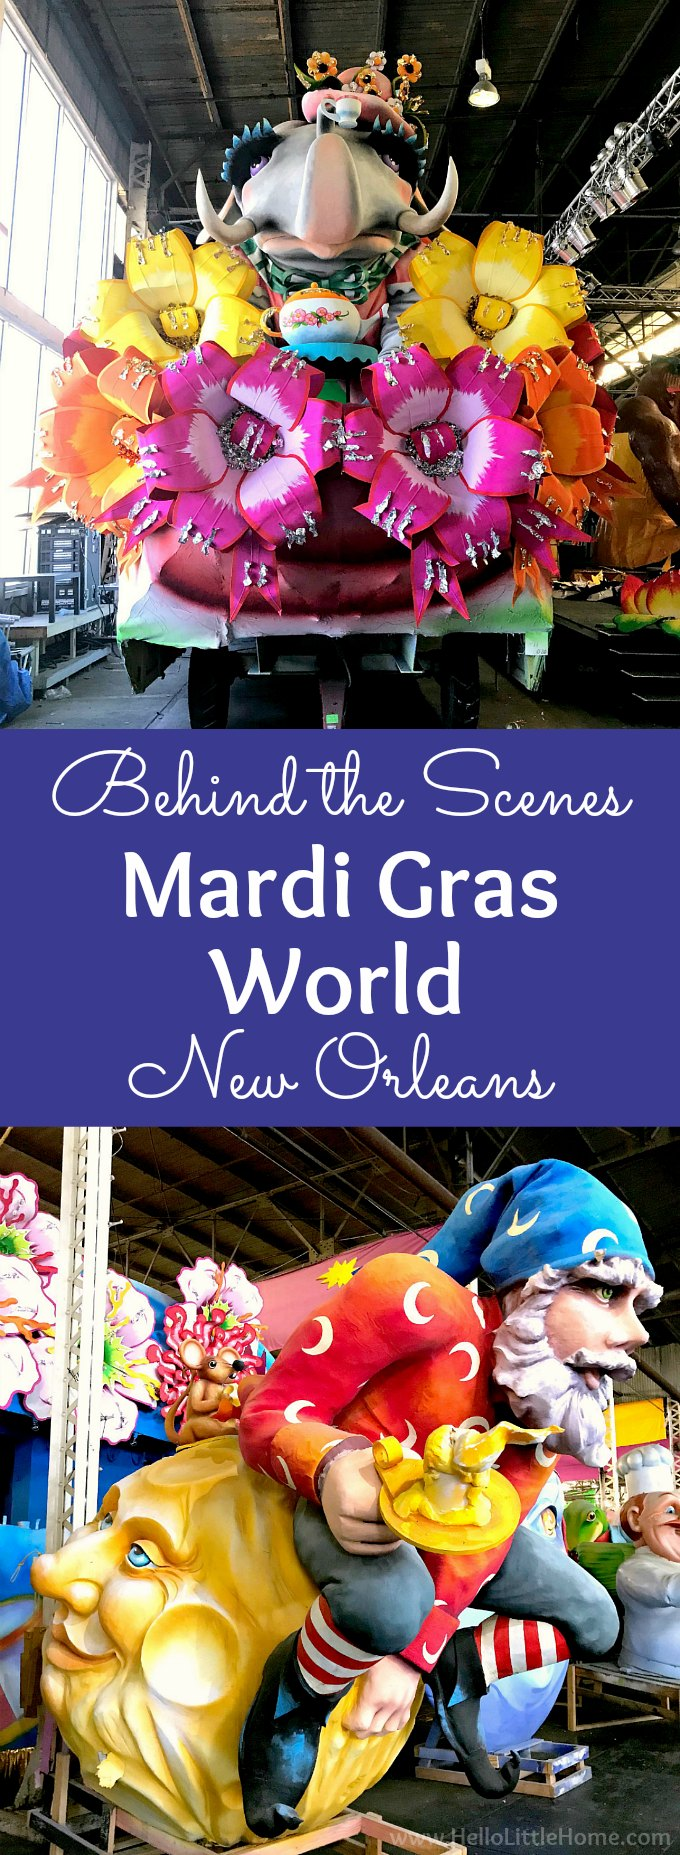 Take a tour behind the scenes at Mardi Gras World in New Orleans! Can't make it to Mardi Gras? You can still enjoy the floats and fun at Blaine Kern's Mardi Gras World! Watch artists making Mardi Gras floats and learn about Mardi Gras history. Add this unique museum located near the French Quarter to your NOLA bucket list, it's one of the best things to do in New Orleans! | Hello Little Home #onetimeinnola #neworleans #nola #mardigras #mardigrasworld #thingstodoinneworleans #followyournola